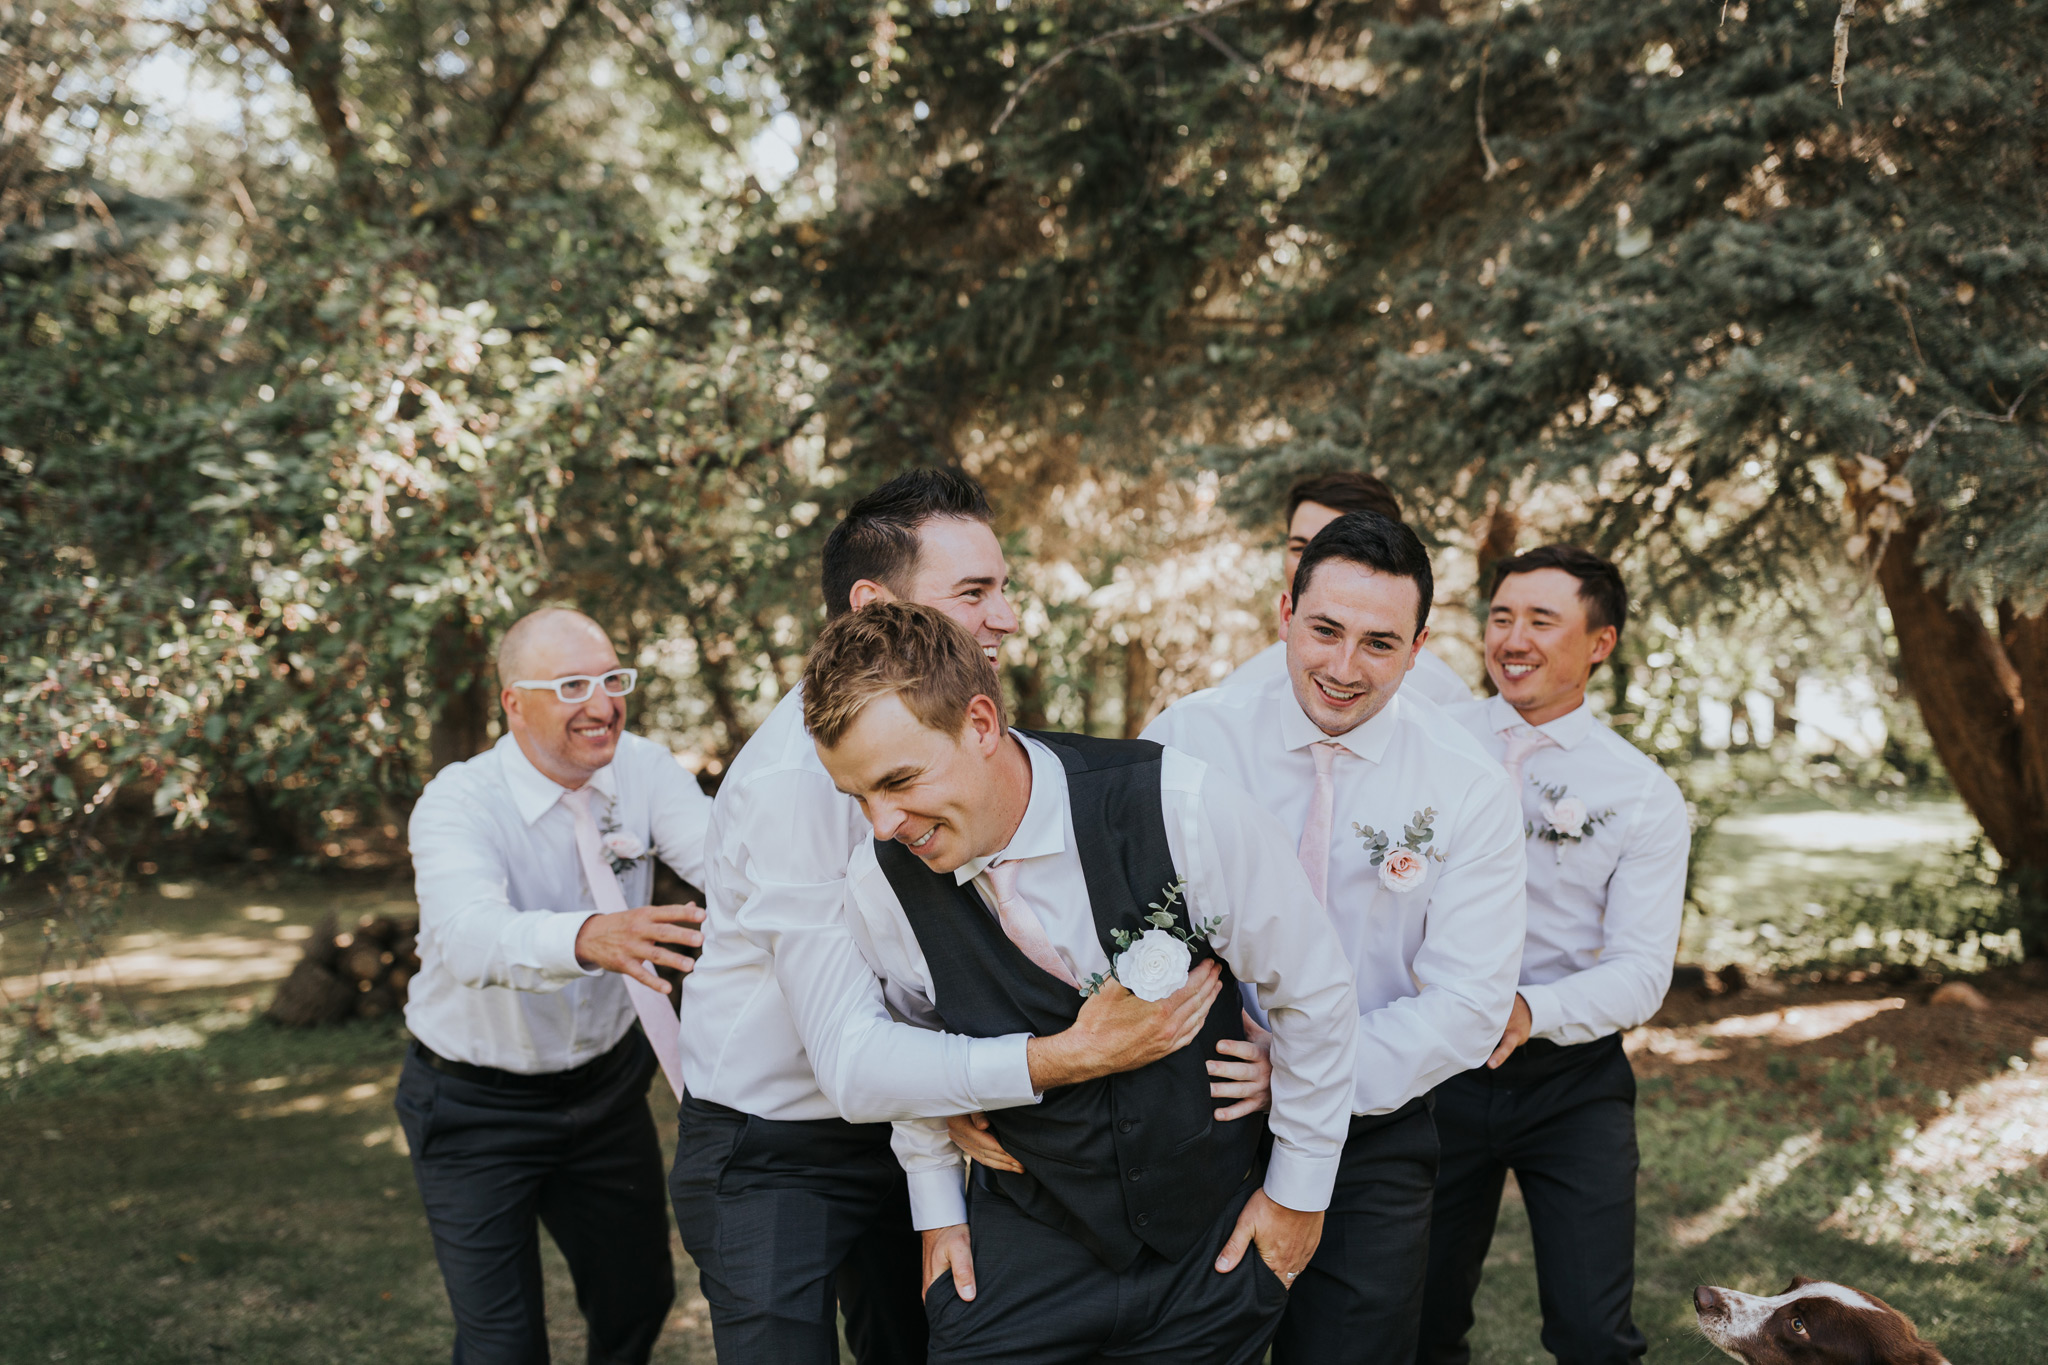 groomsmen run up behind groom and tackle him laughing fun photo